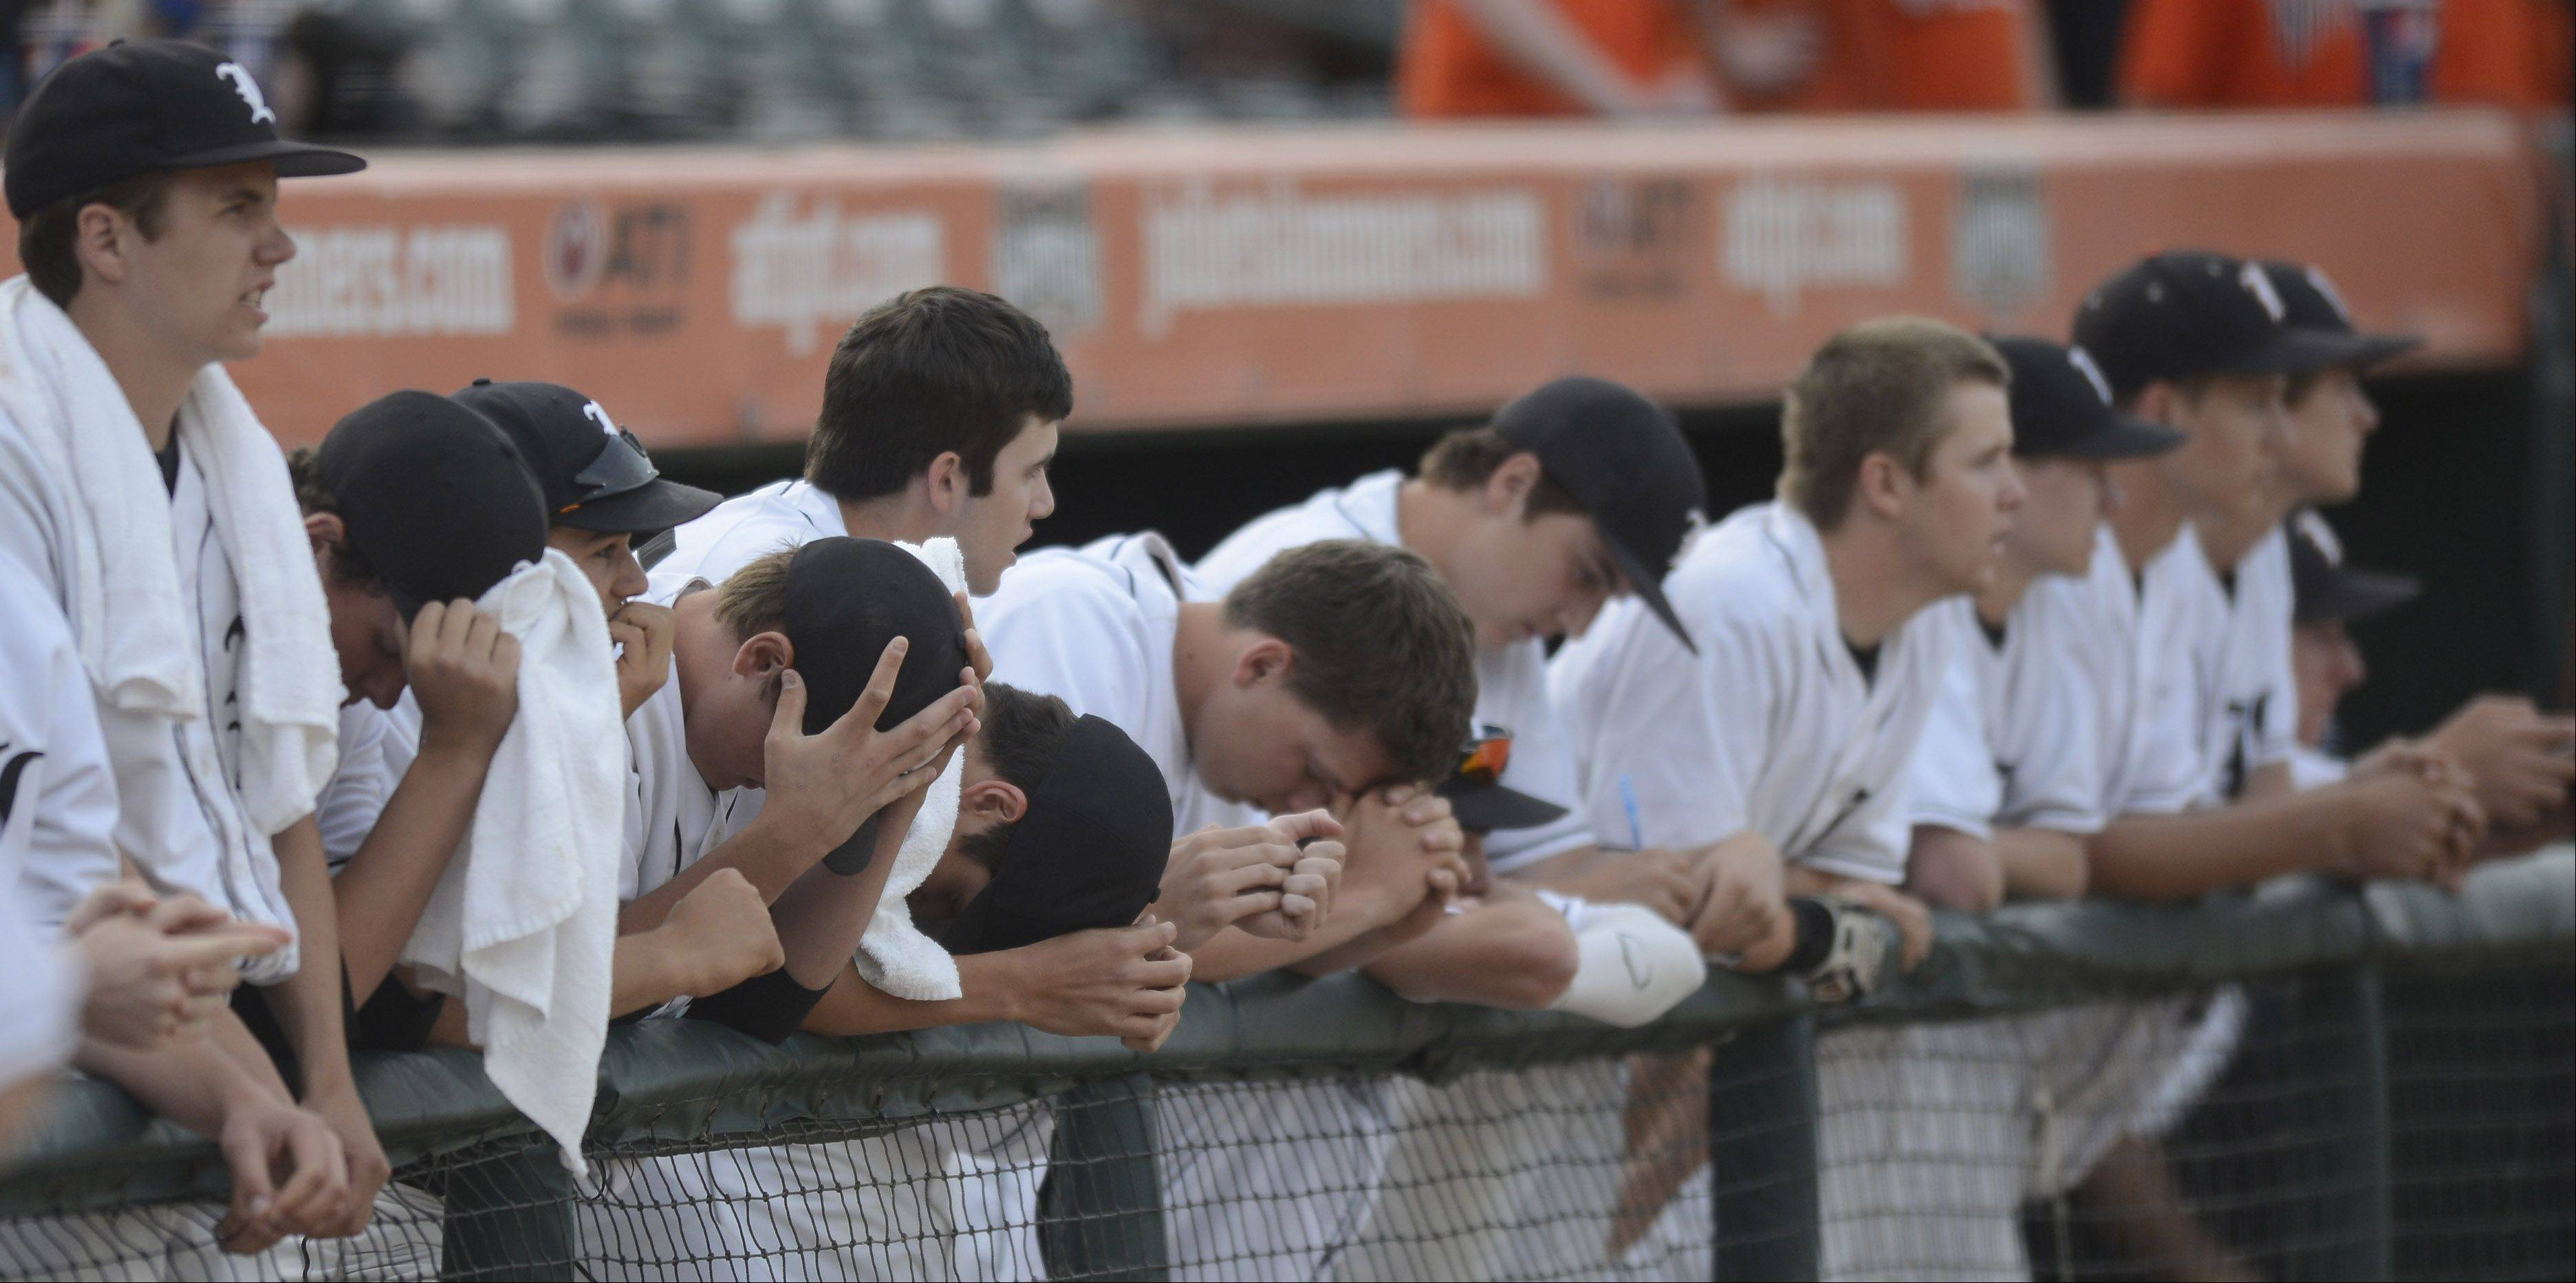 Libertyville players stand together in their dugout as fireworks are launched in celebration of Mt. Carmel's victory in the Class 4A state baseball championship game at Silver Cross Field in Joliet Saturday.